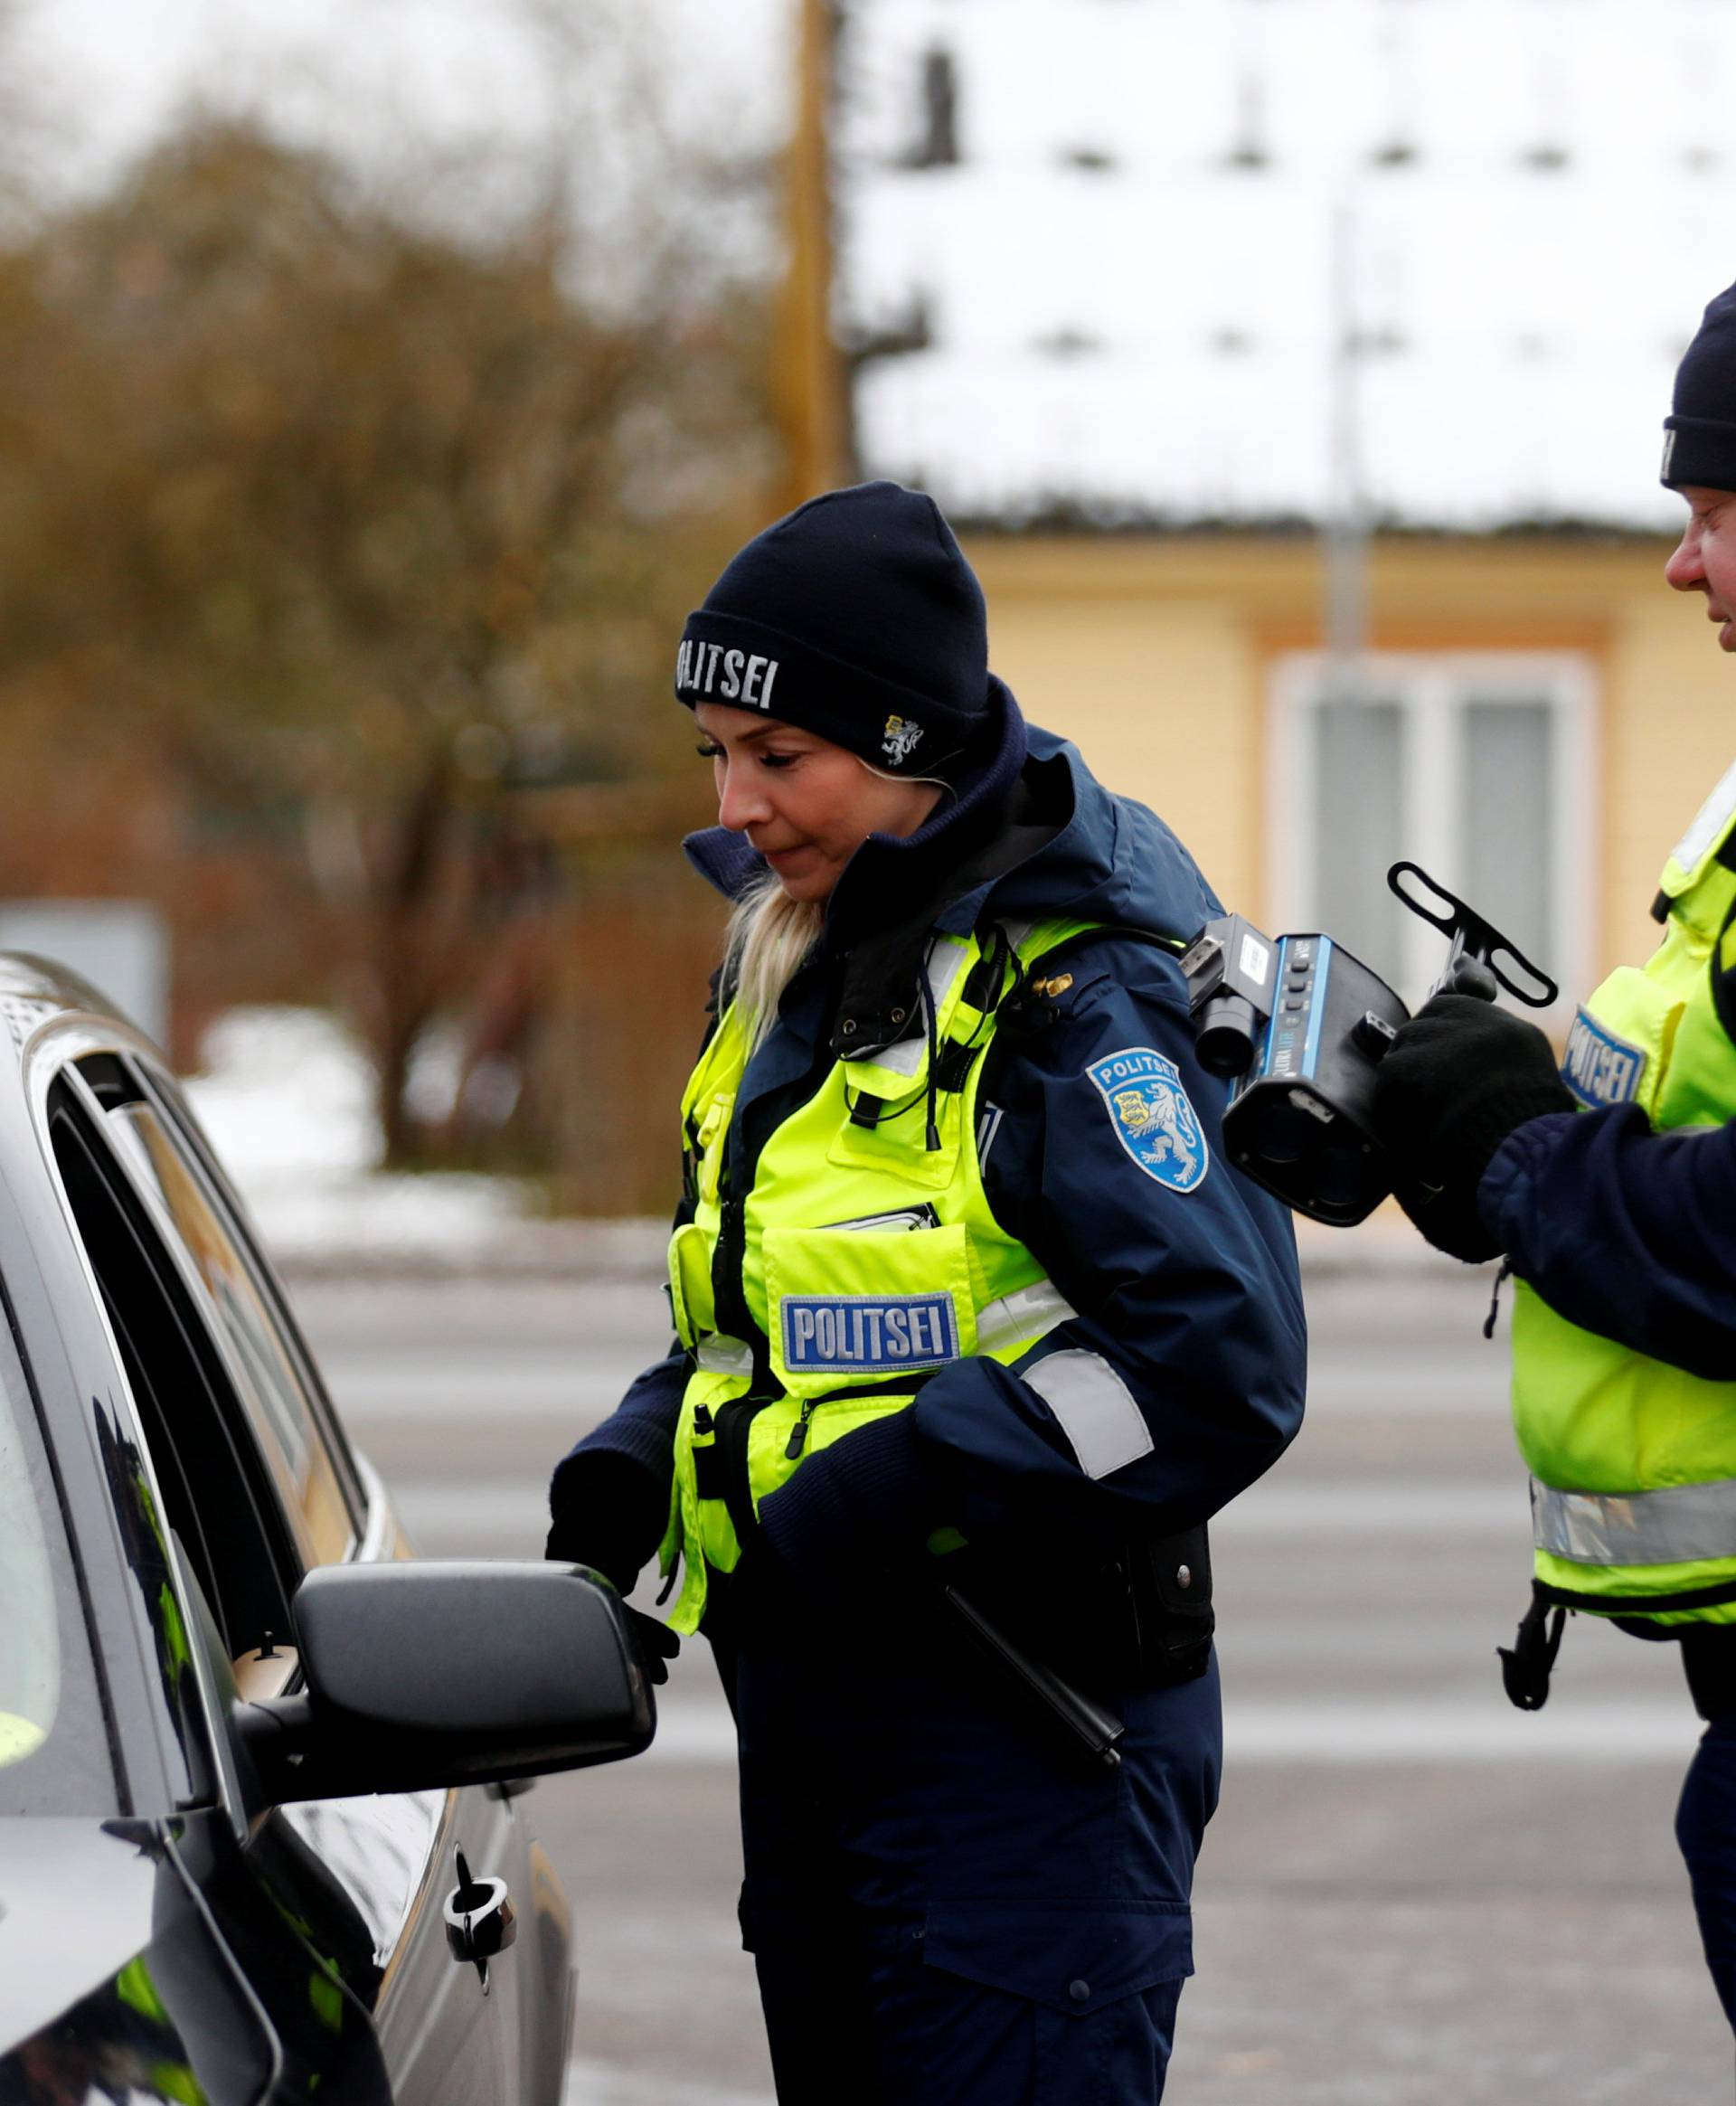 Estonian police officers Hele Truus and Aimar Luik talk to a speeding driver in Parnu